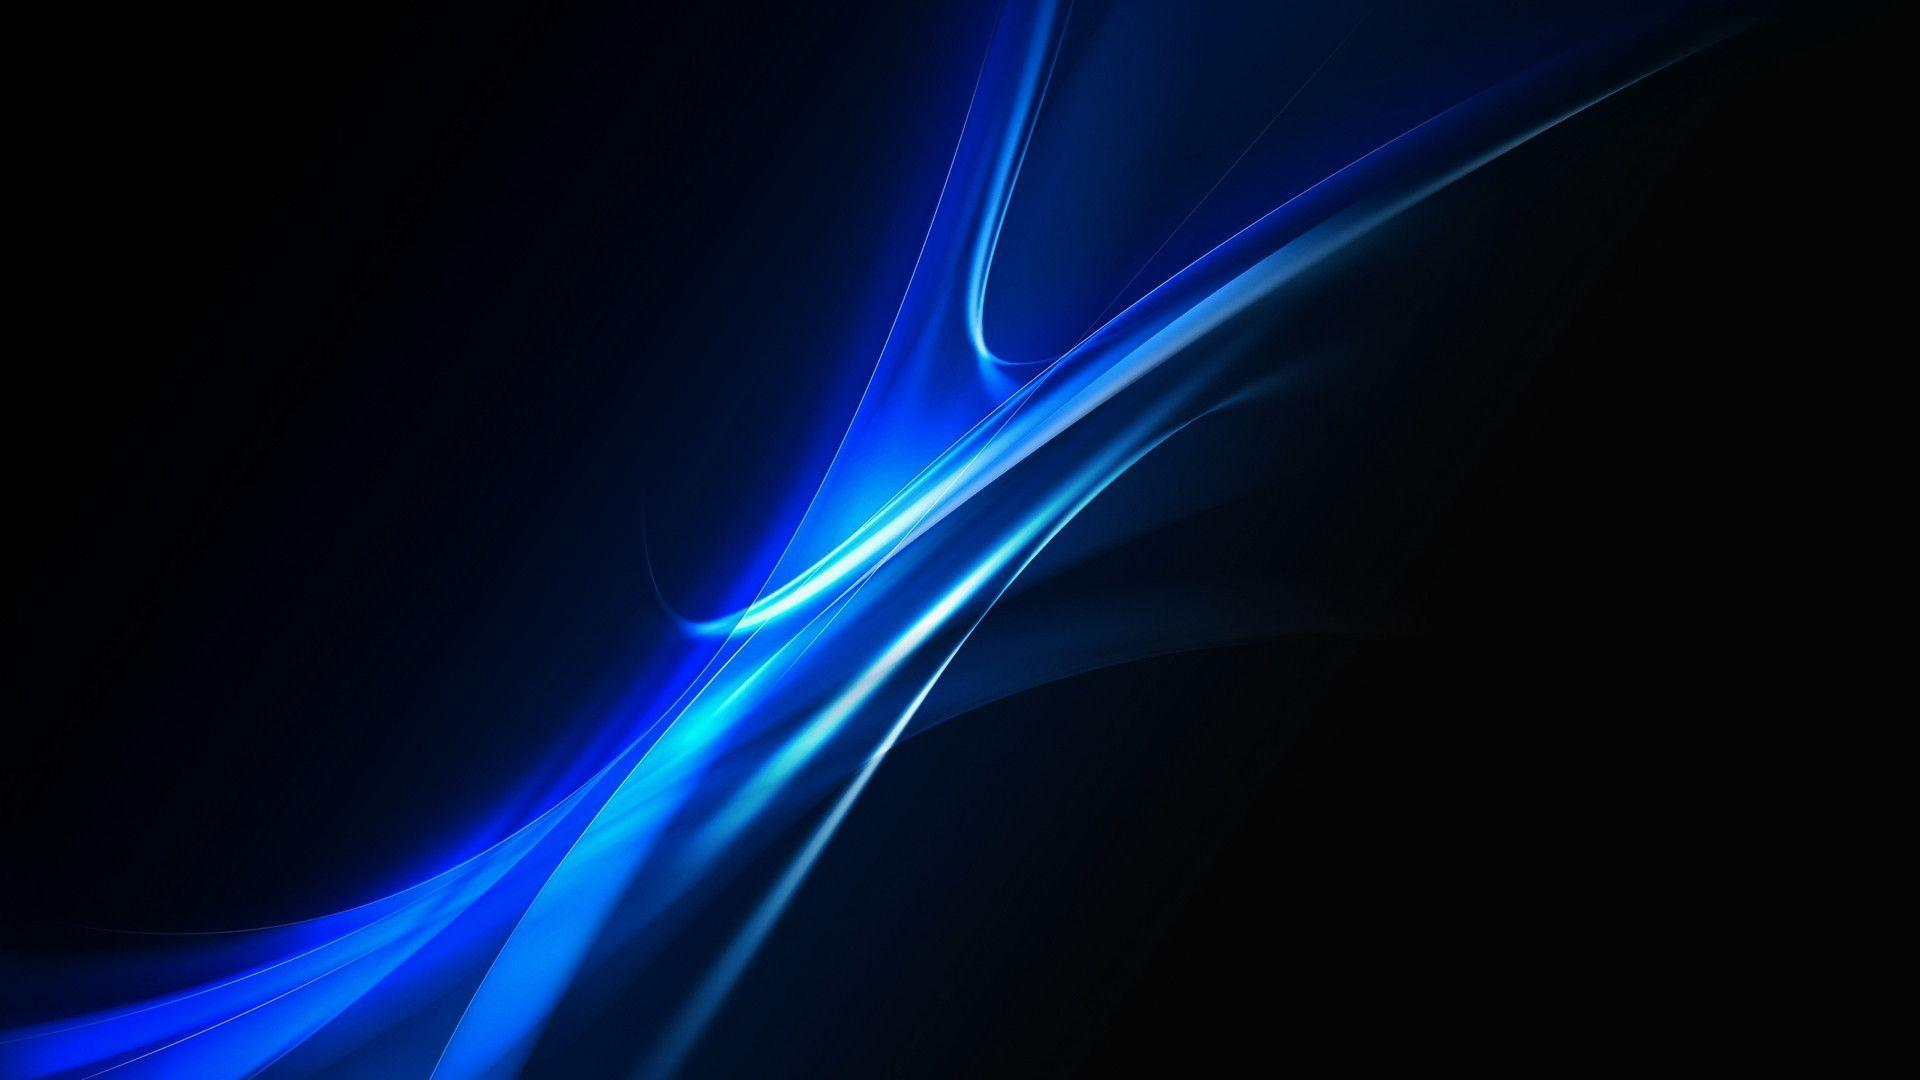 Abstract Wallpapers 1920x1080 - Wallpaper Cave